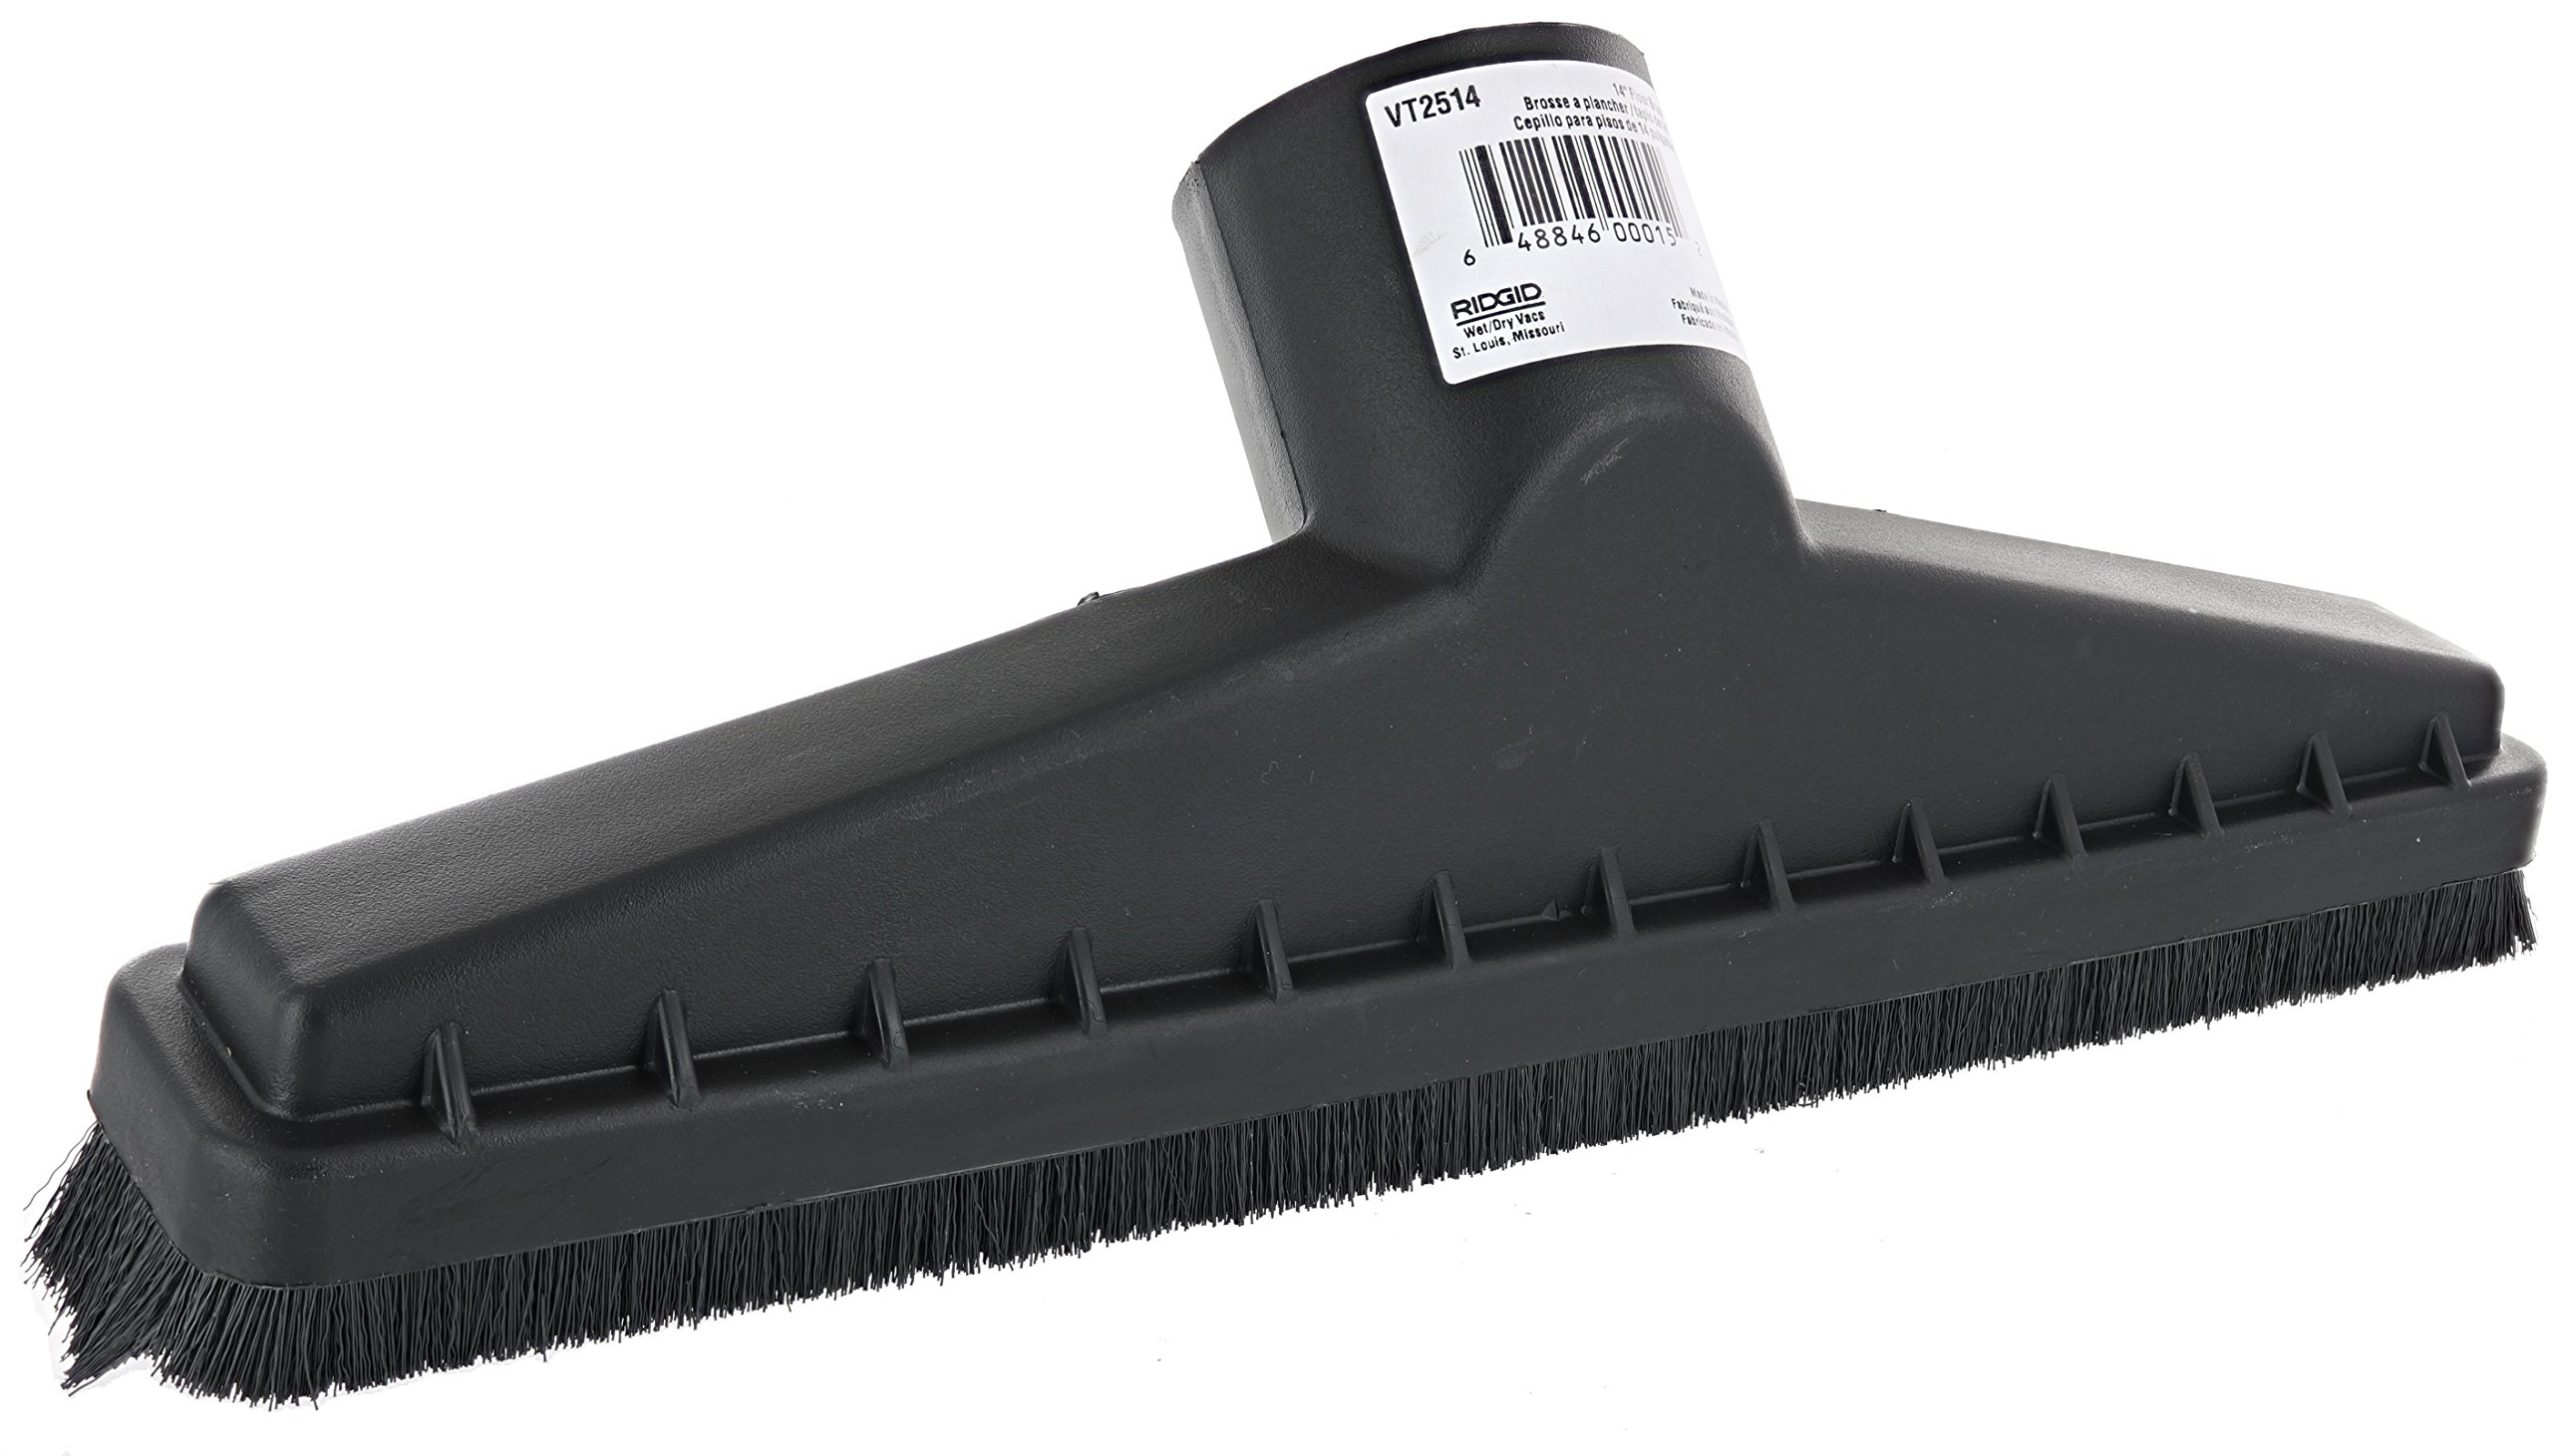 Ridgid VT2514 2.5 Inch Diameter and 14 Inch Wide Floor Brush Accessory for Ridgid Wet and Dry Vacuums by Ridgid